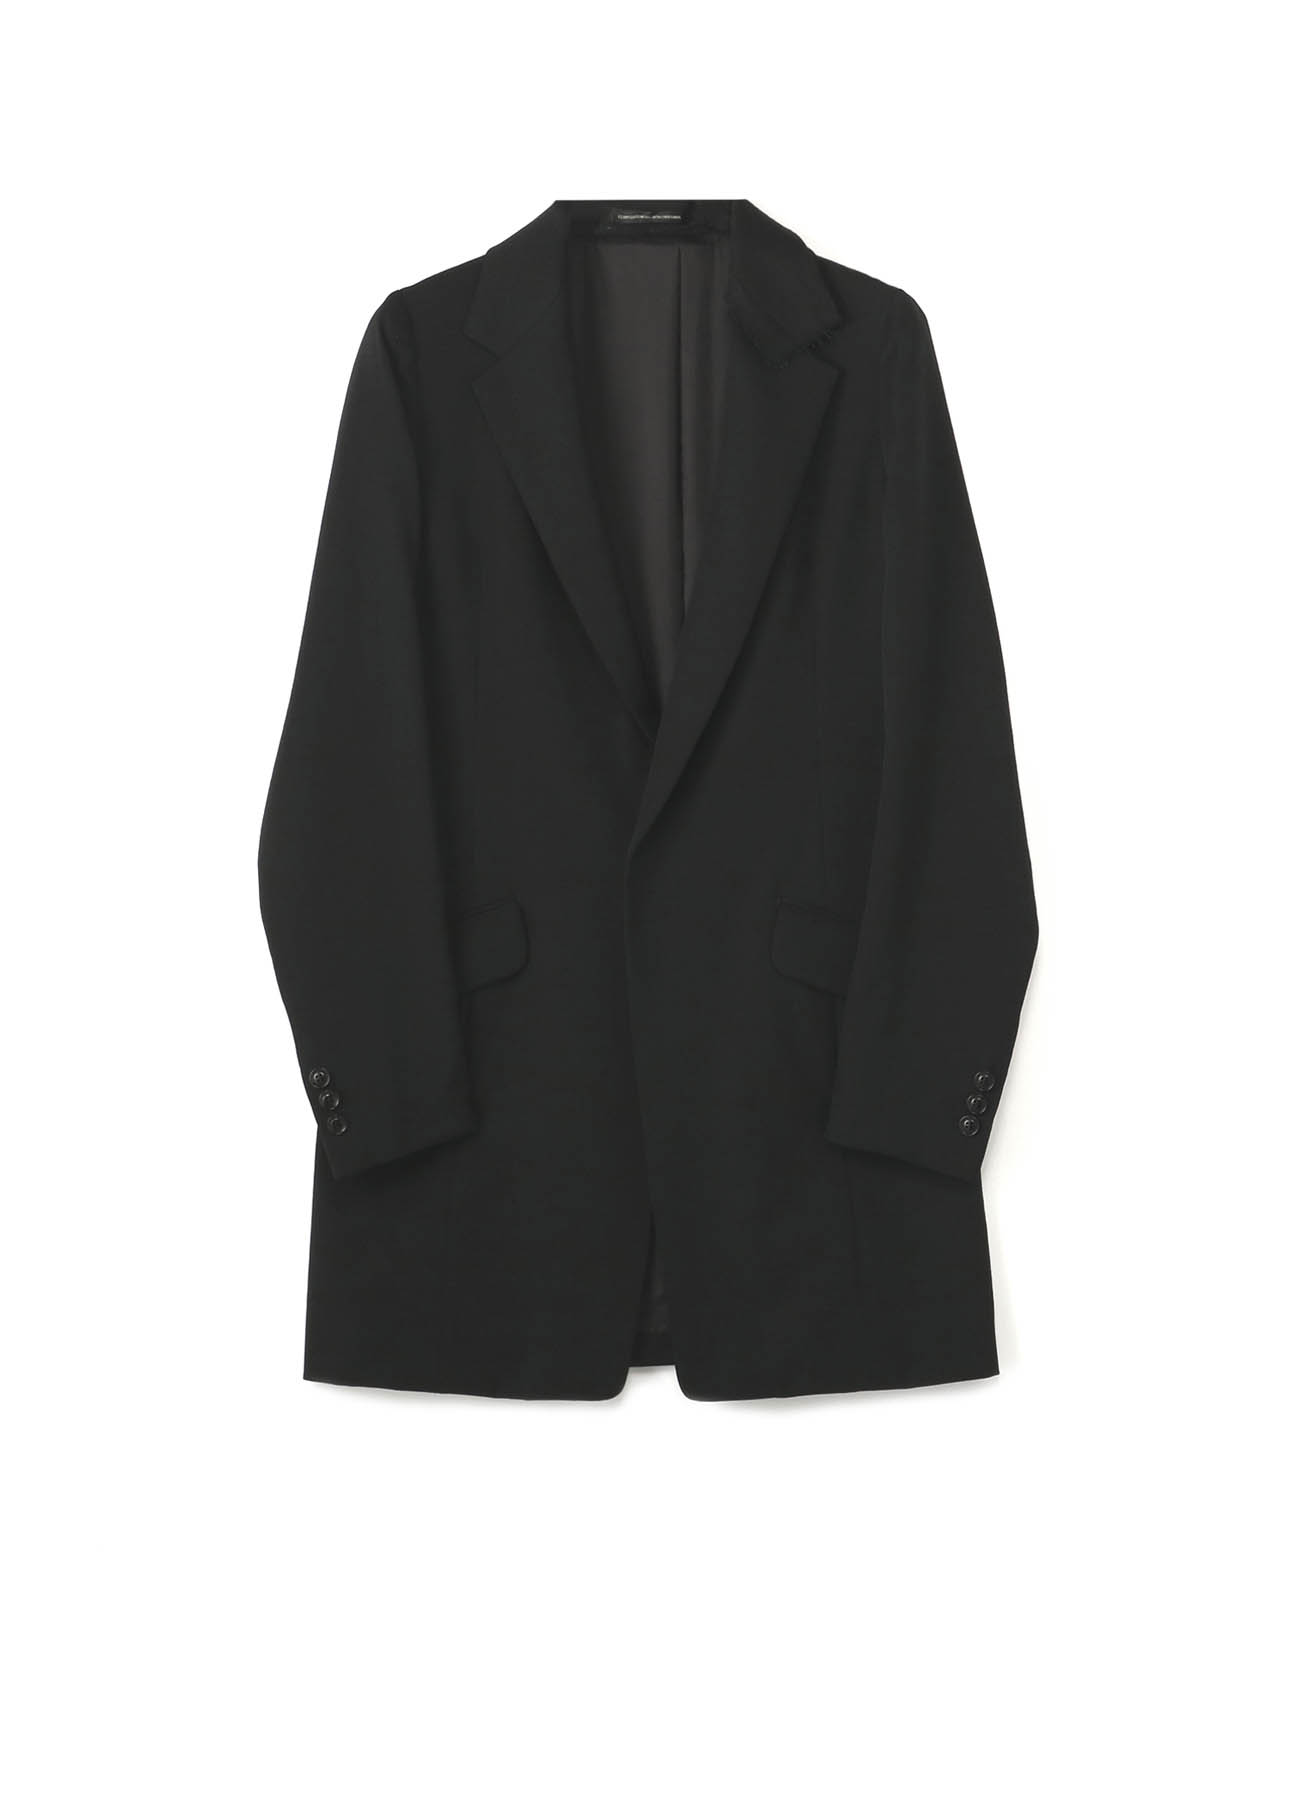 GABARDINE DOUBLE? COLLAR TAILORED JACKET